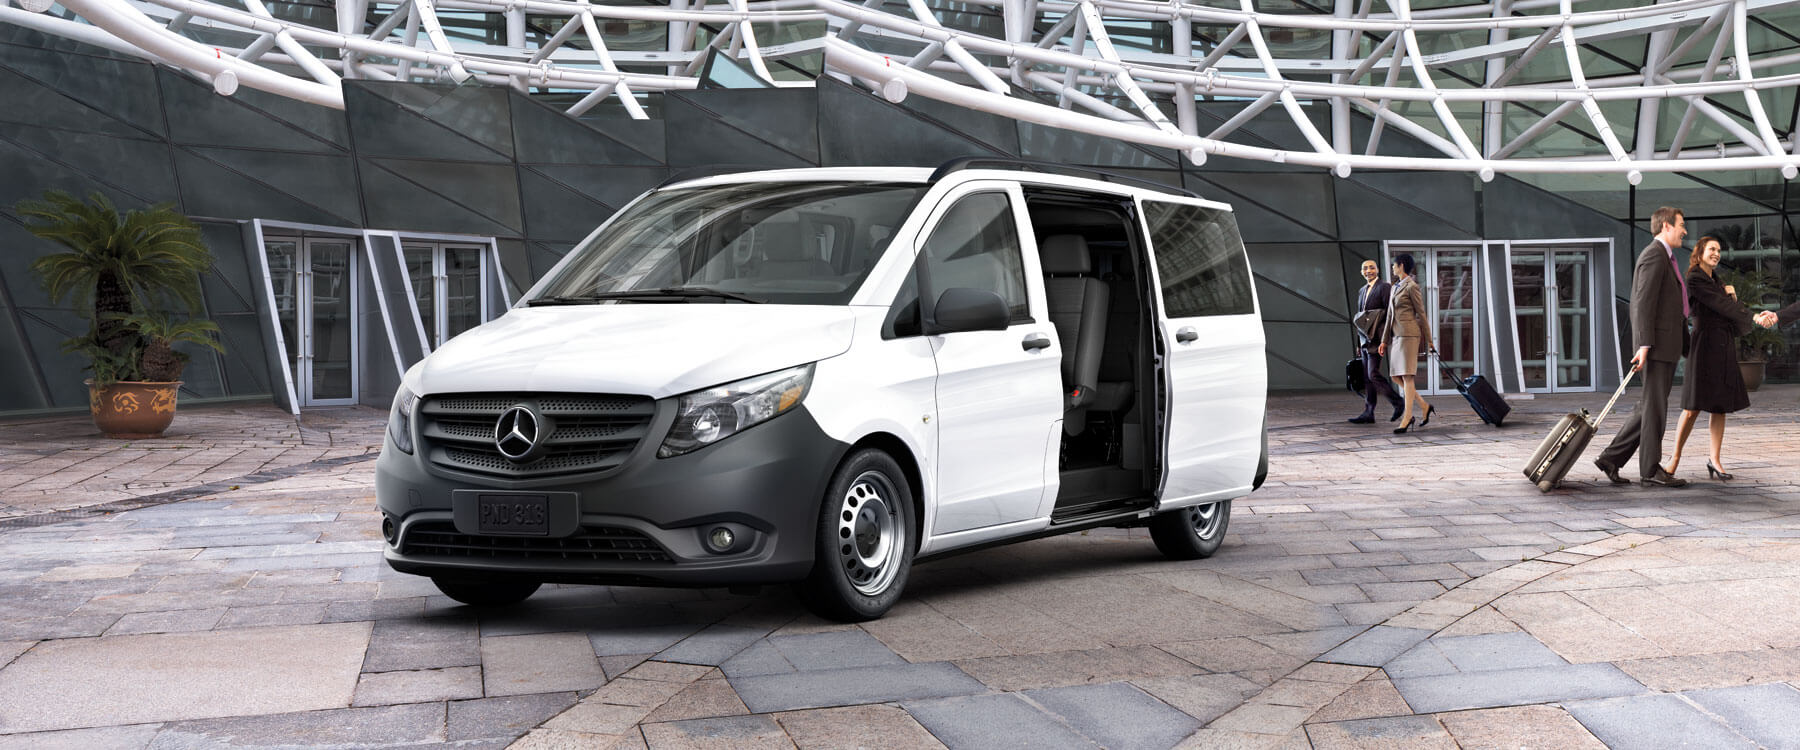 The metris passenger van is versatile and well equipped for 2017 mercedes benz metris passenger van